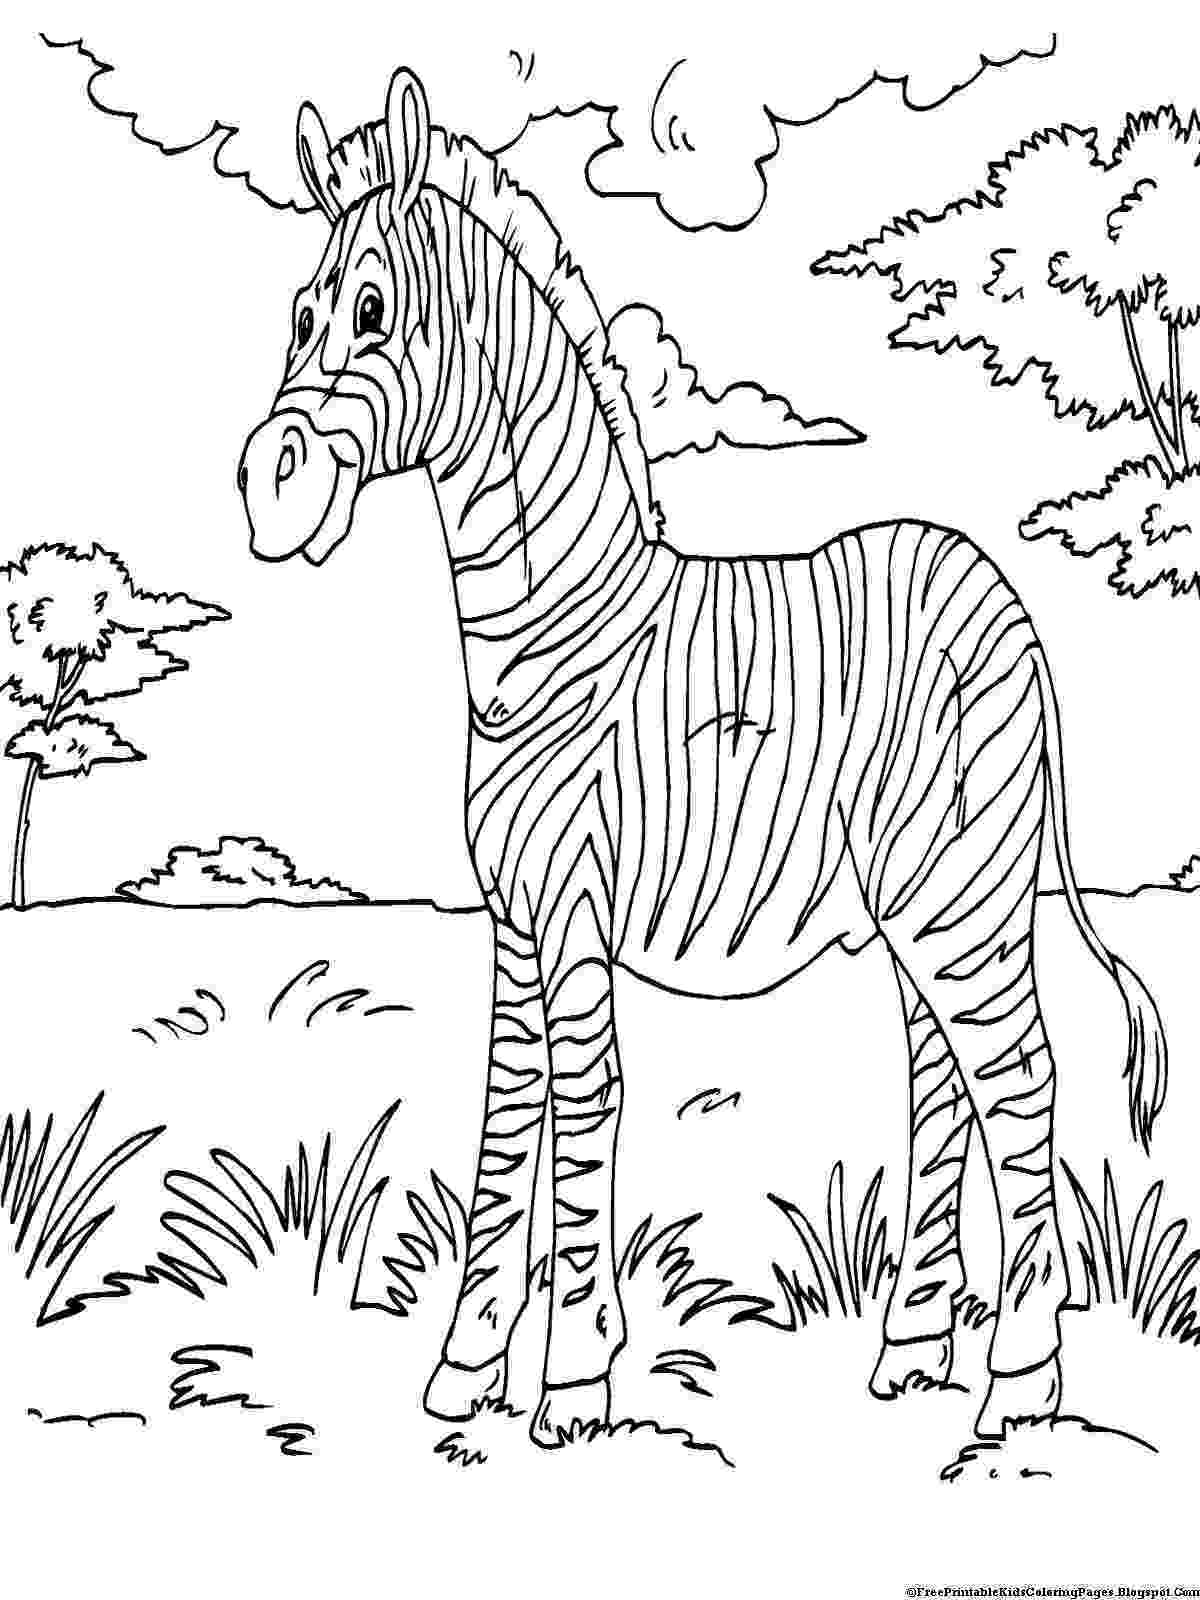 colouring pages for toddlers printable free printable tangled coloring pages for kids colouring toddlers pages for printable